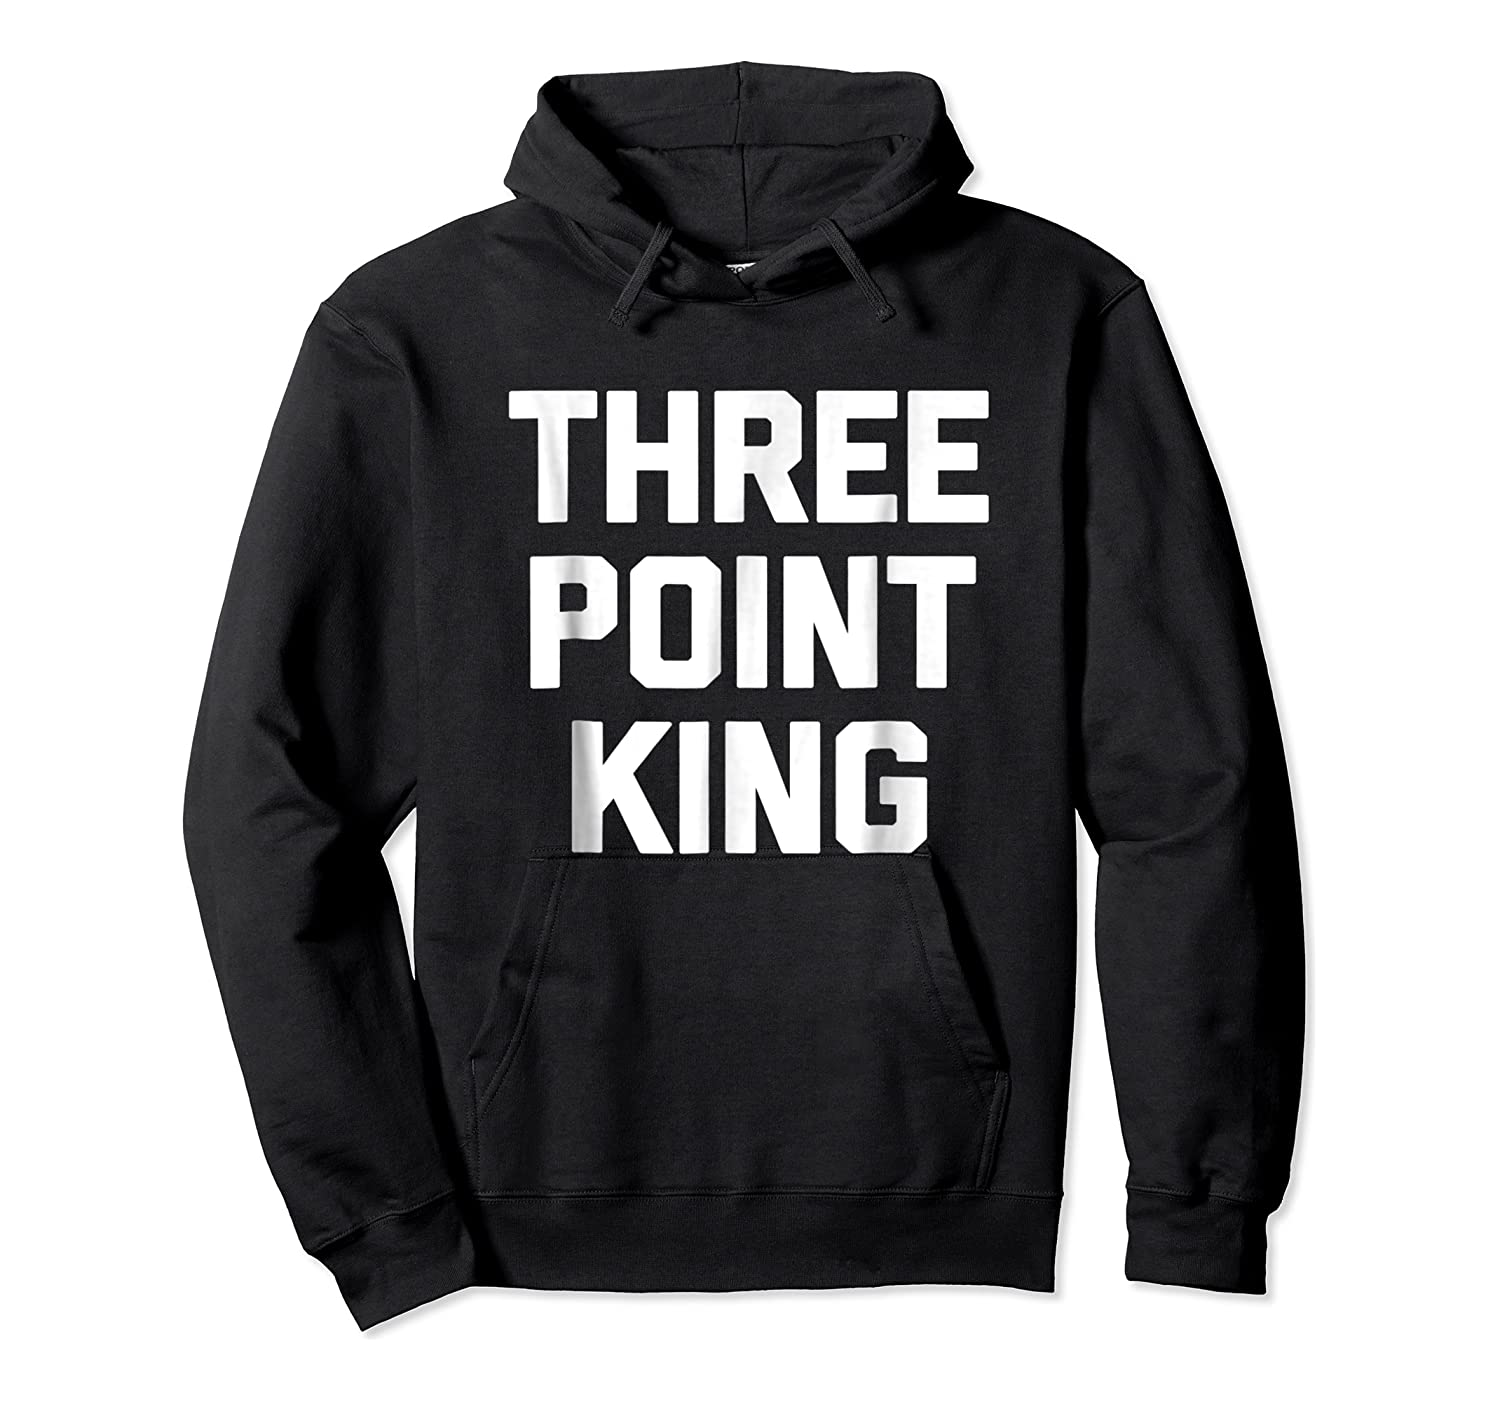 Three Point King T-shirt Funny Saying Basketball Humor Cool Unisex Pullover Hoodie